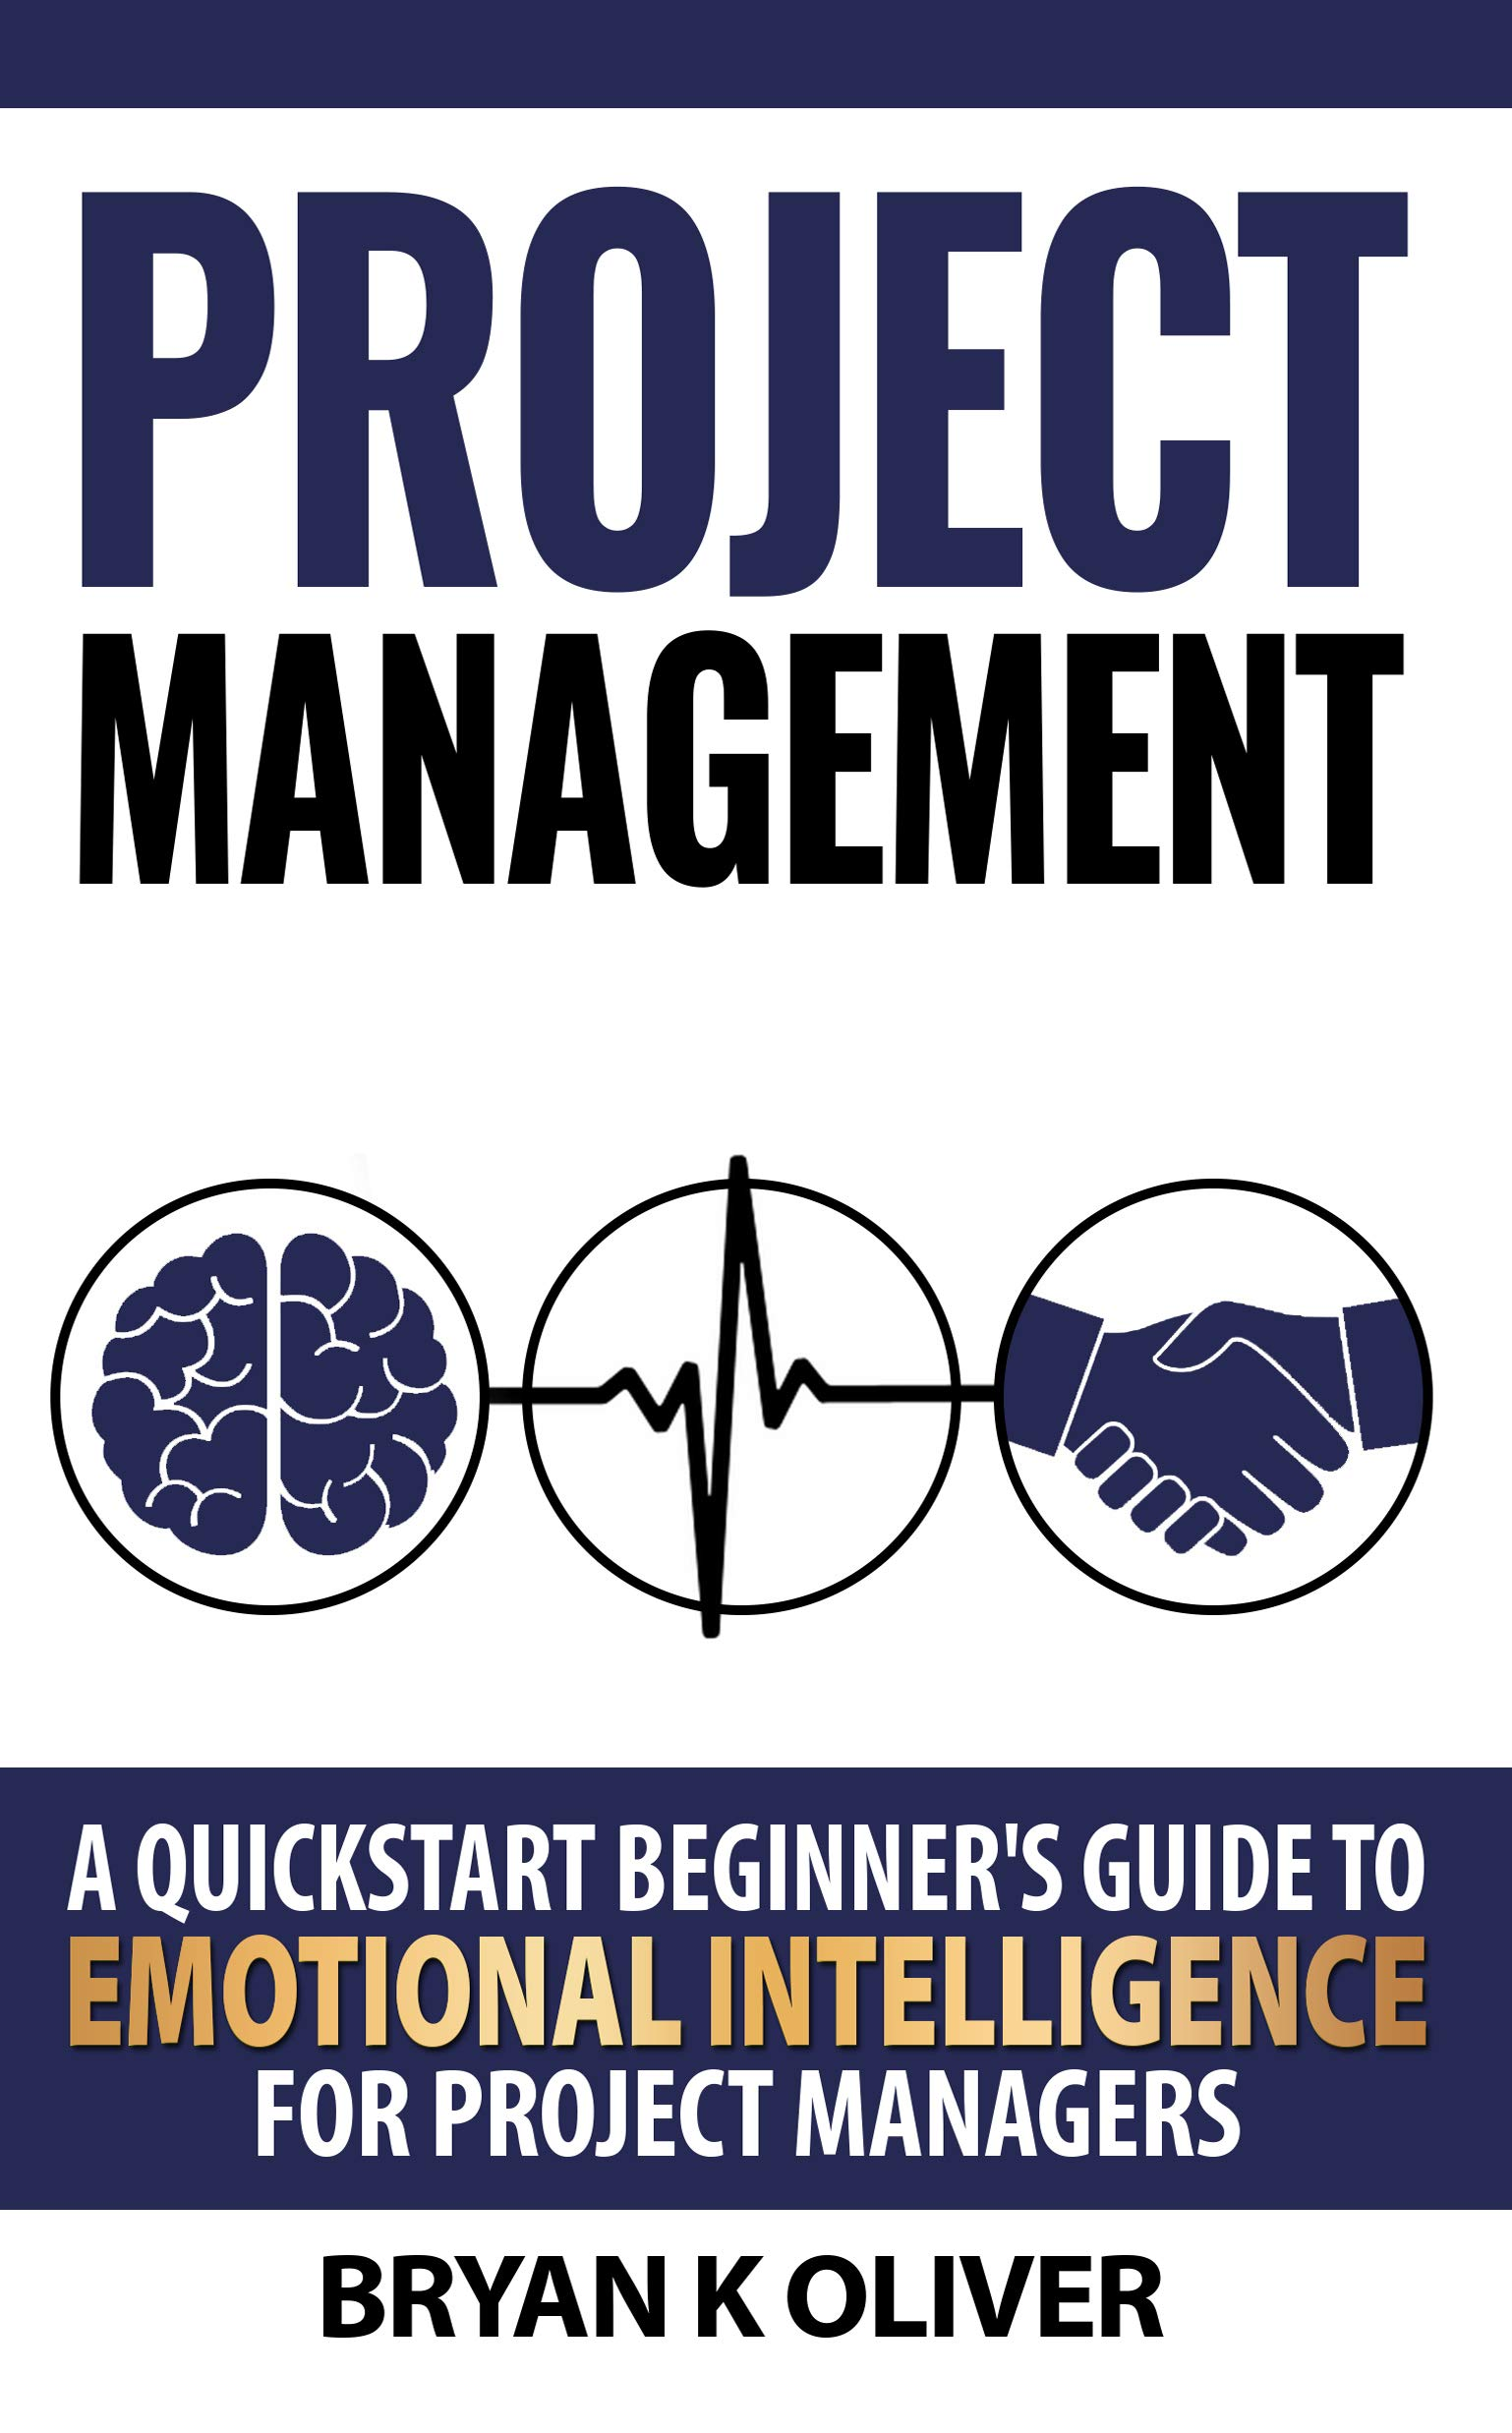 Project Management: A Quickstart Beginner's Guide To Emotional Intelligence For Project Managers